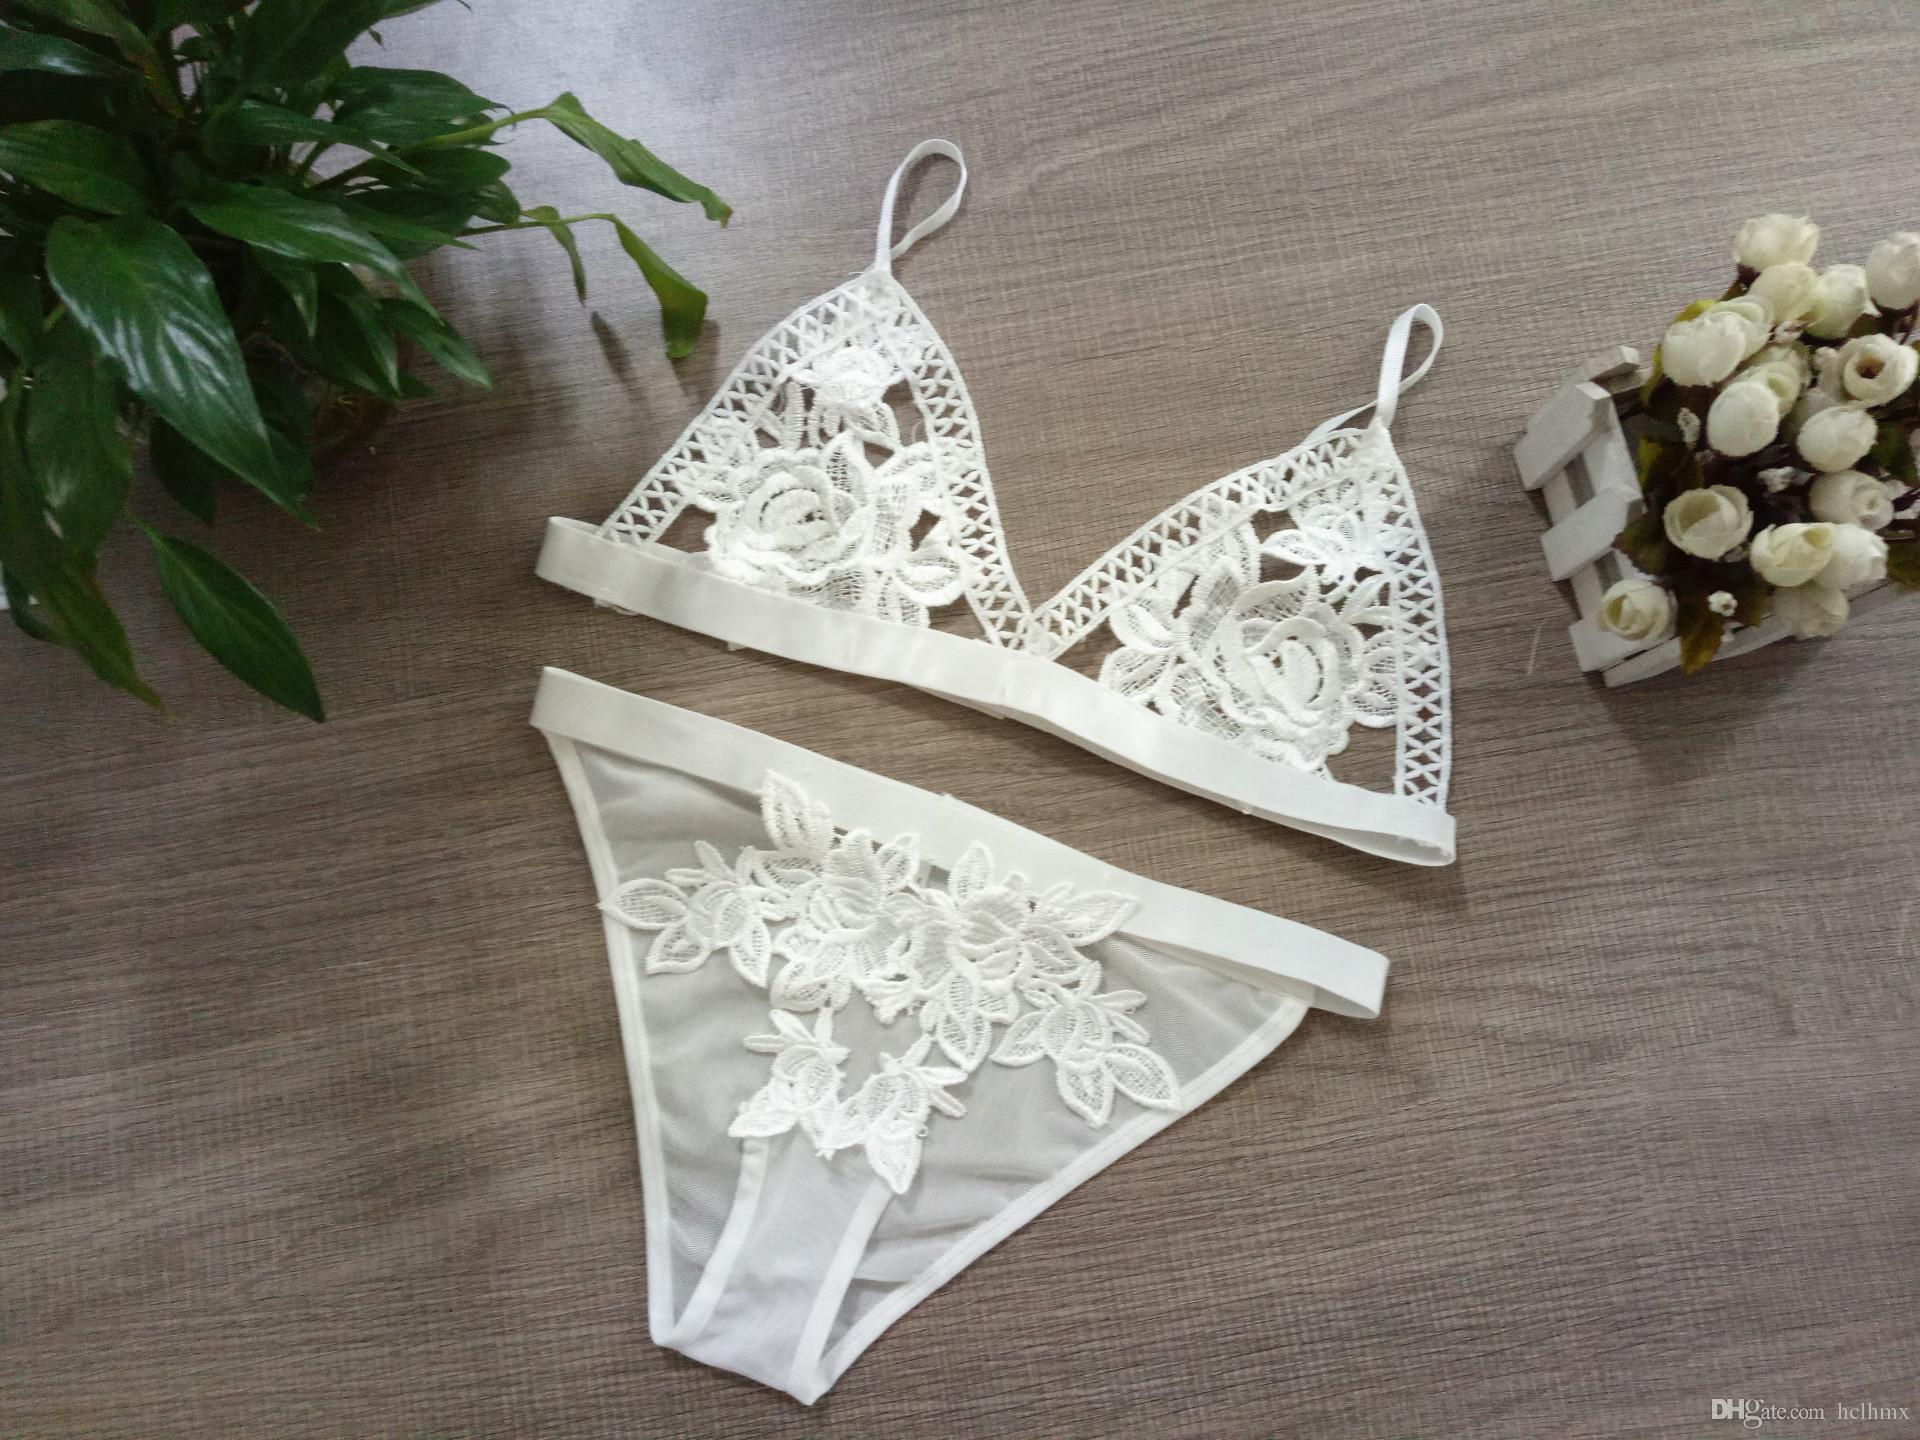 58460e5d919b1 Sexy Sheer Lacy Lingerie Set Wedding Gift for Her Soft Wire Free Lace  Triangle Bralette Hot Sale FREESHIPPINGBra with Panti Lace Triangle Lace Bra  ...